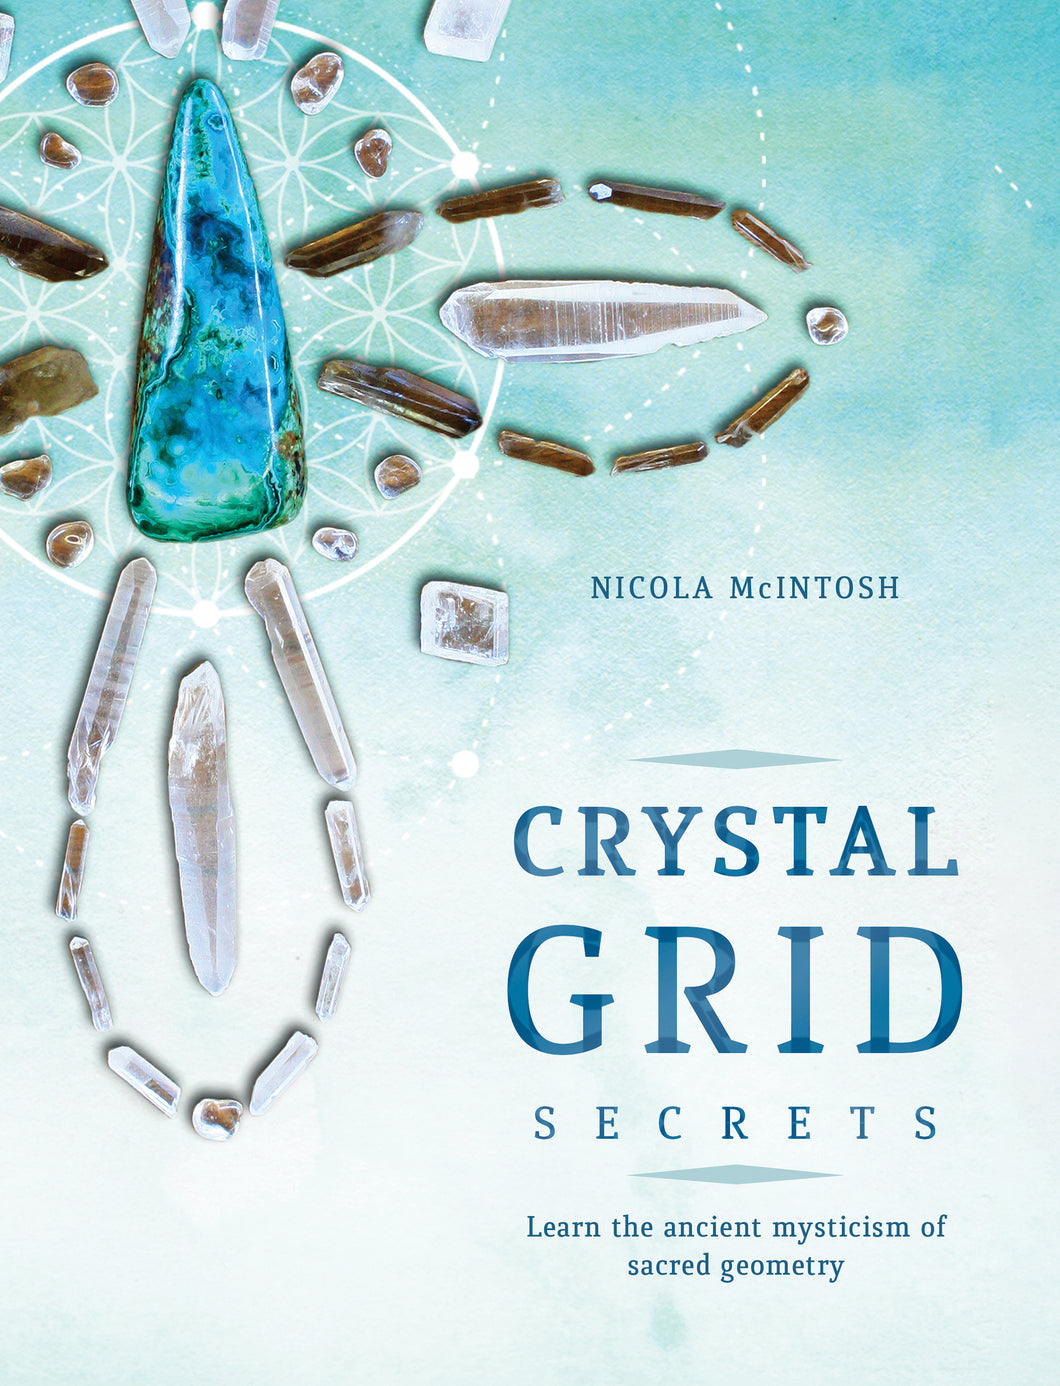 Crystal Grid Secrets (Nicola McIntosh)